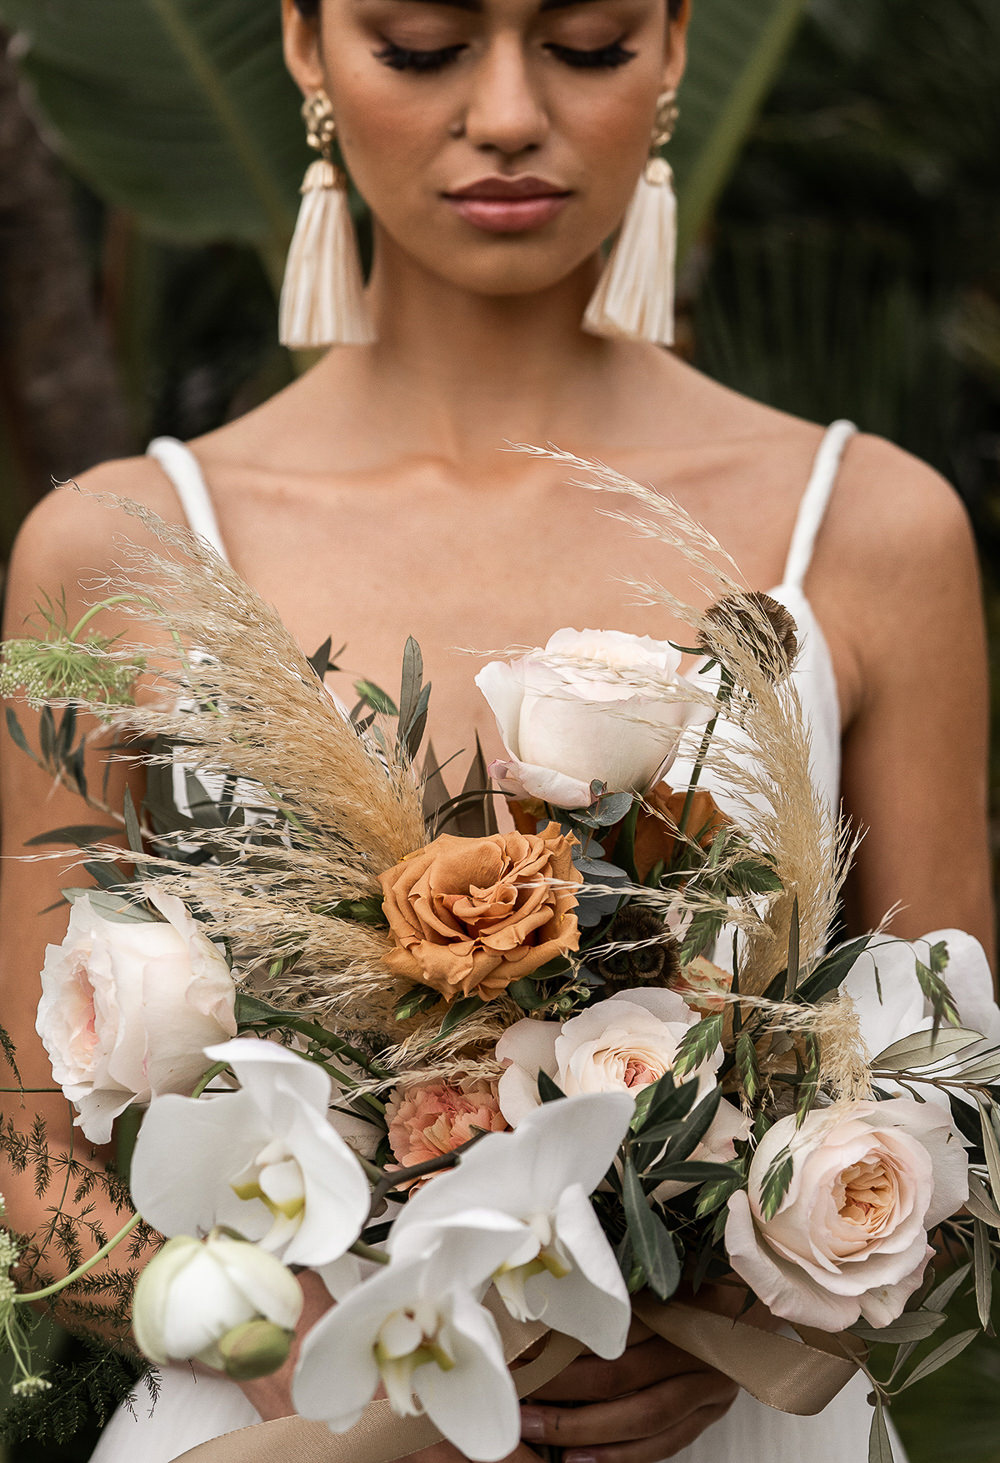 Bouquet Flowers Bride Bridal Orchid Orange Rose Pampas Grass Marbella Elopement Wedding Nora Photography